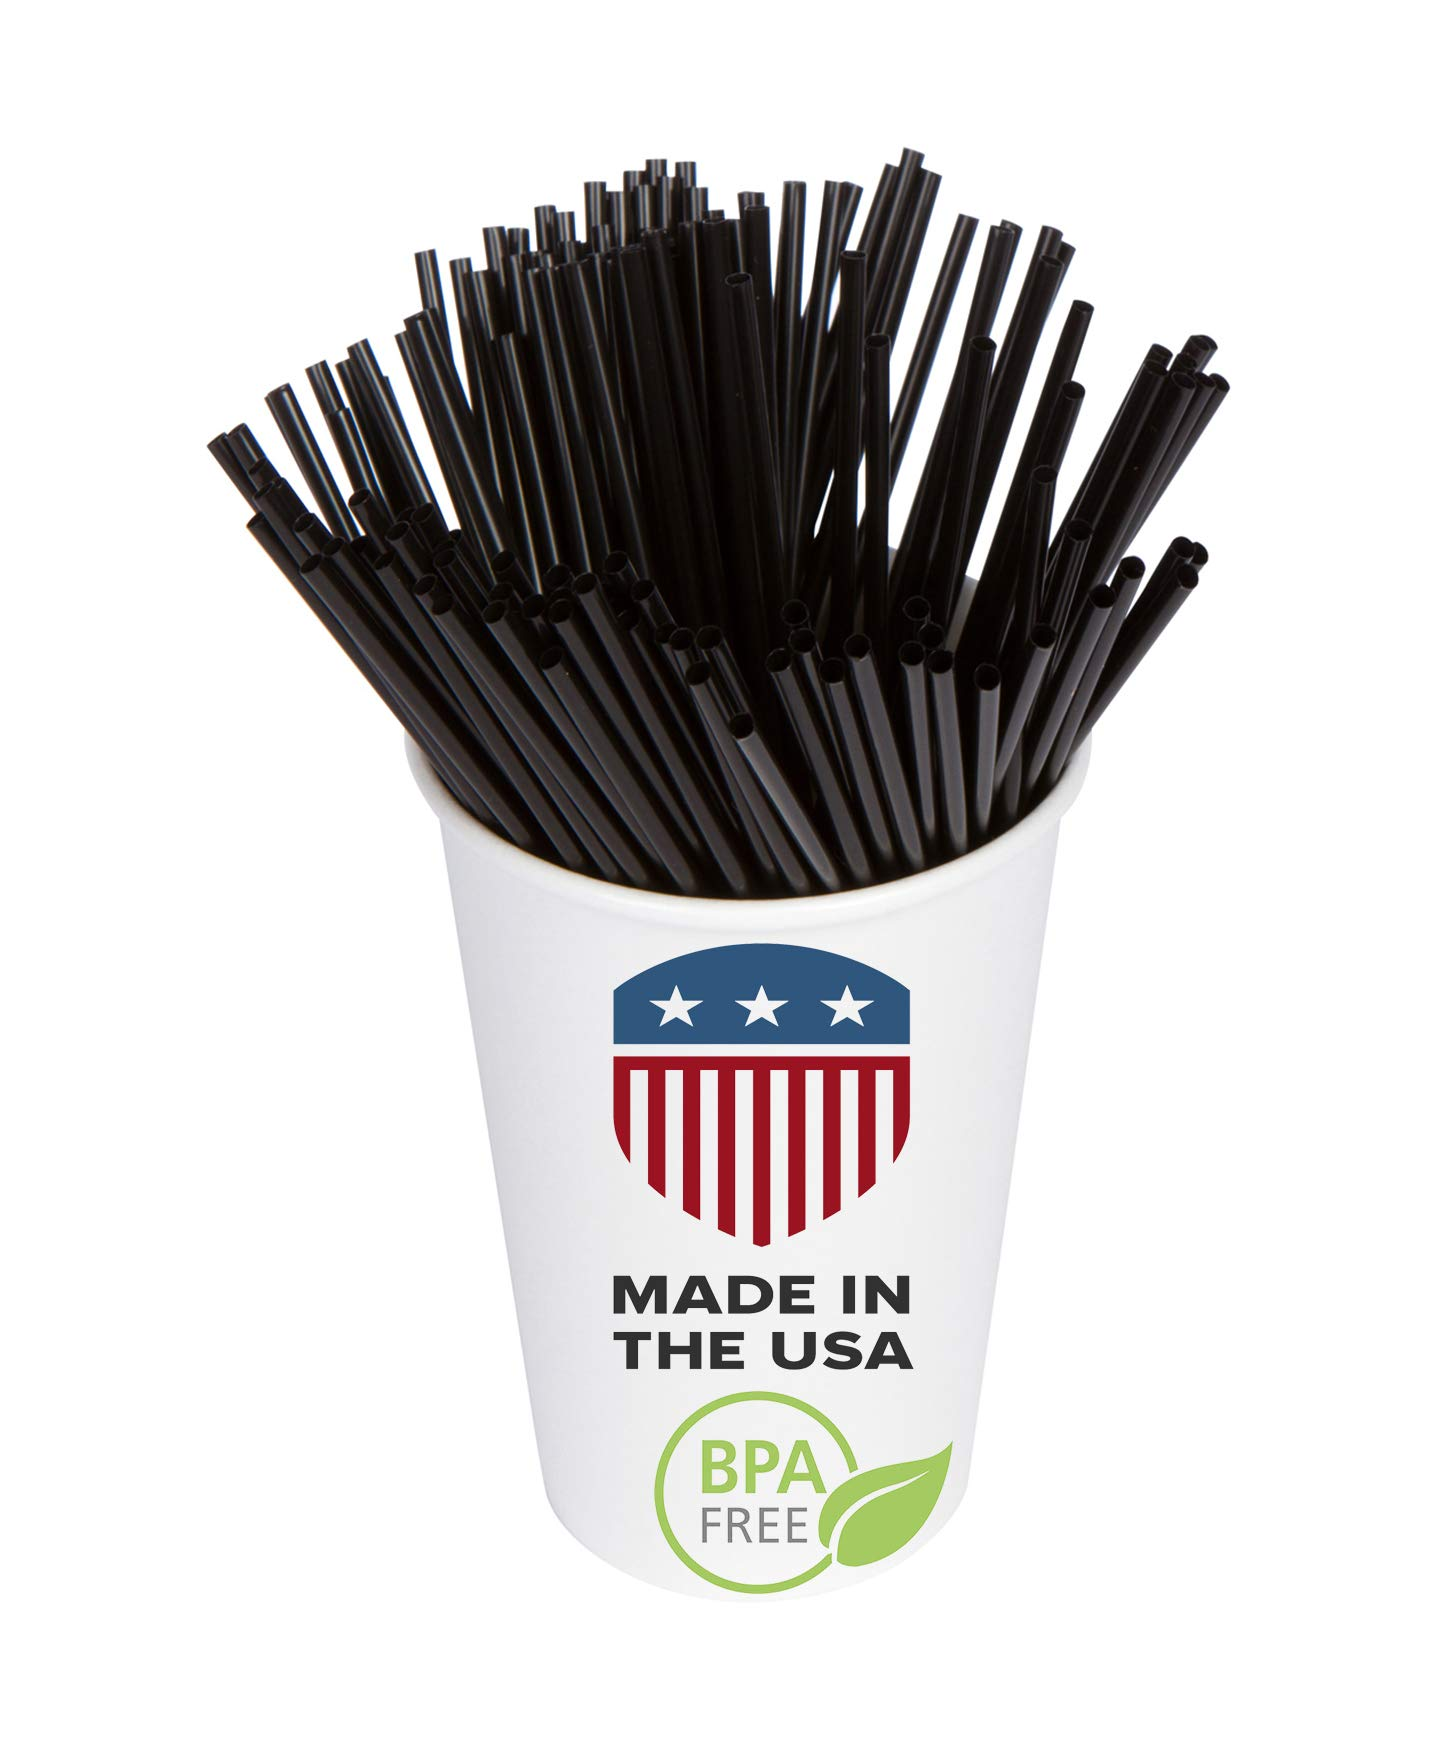 Coffee Stir Sticks, Plastic Stirrers: USA Made, BPA Free: Cocktail Straws, 5.25'' Black, 1000ct